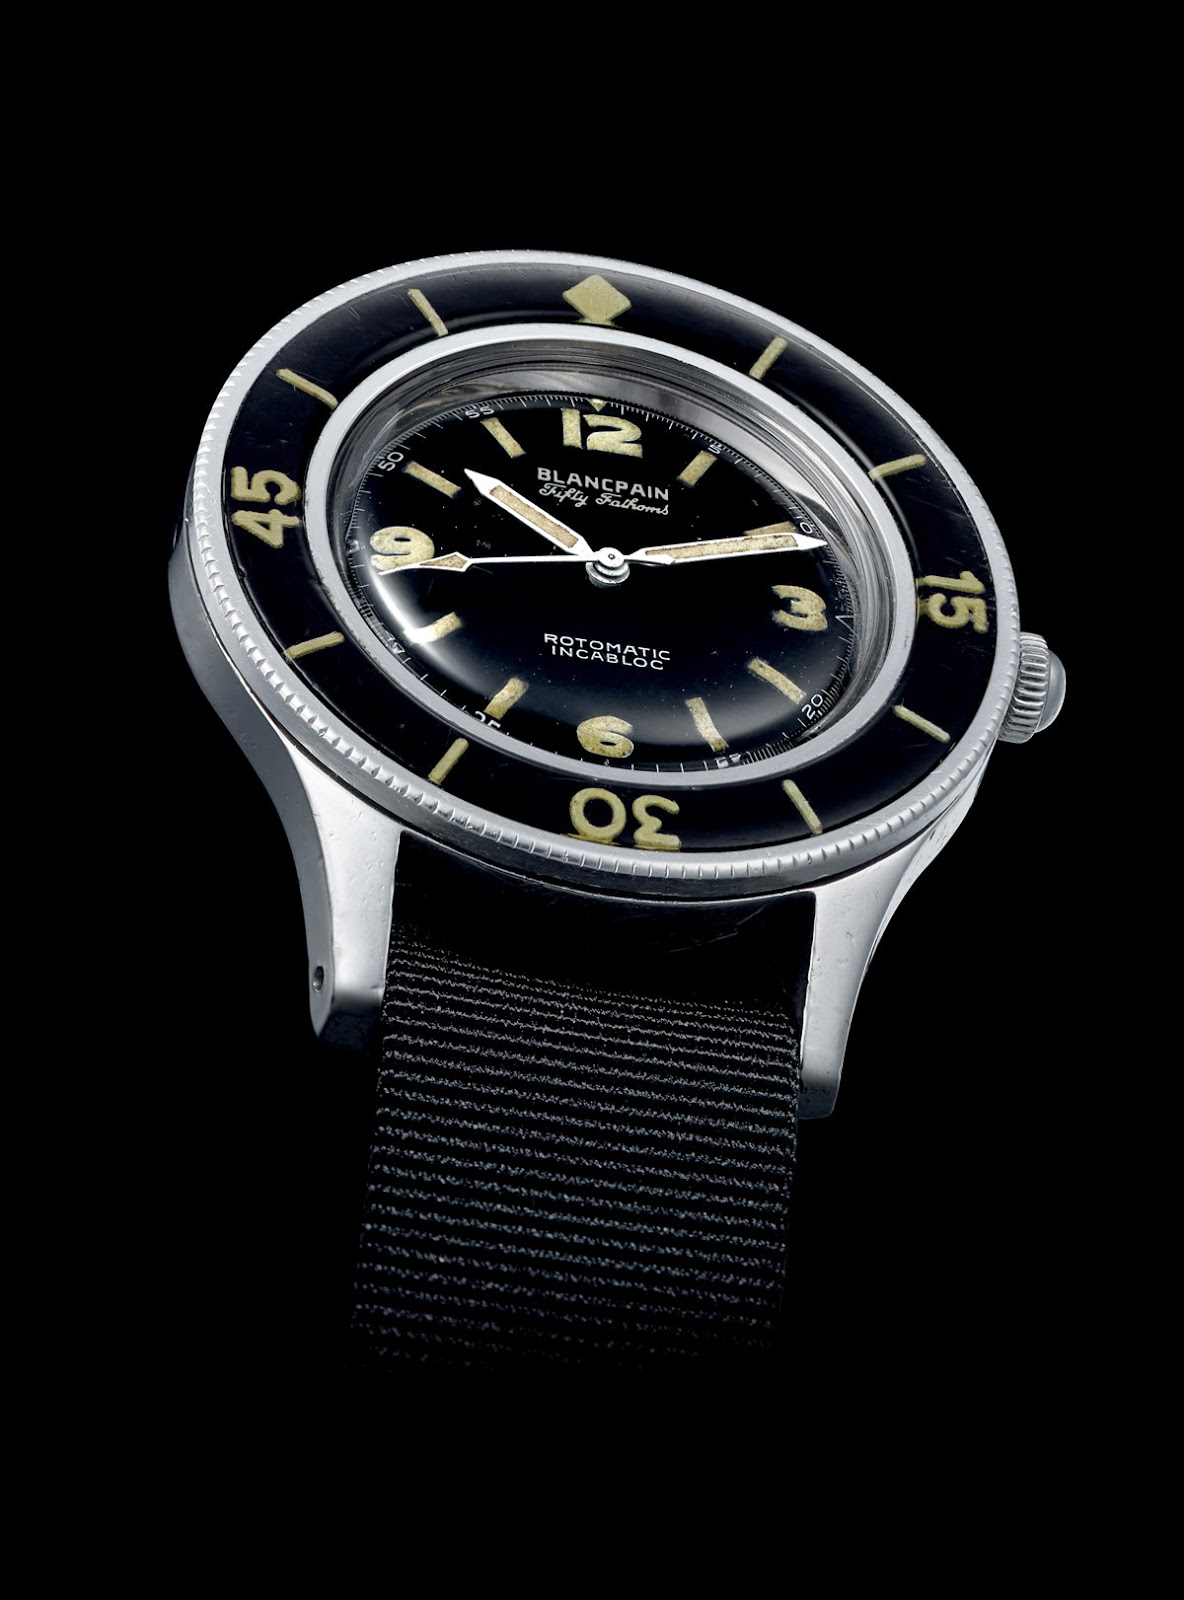 BLANCPAIN-FIFTT FATHOMS